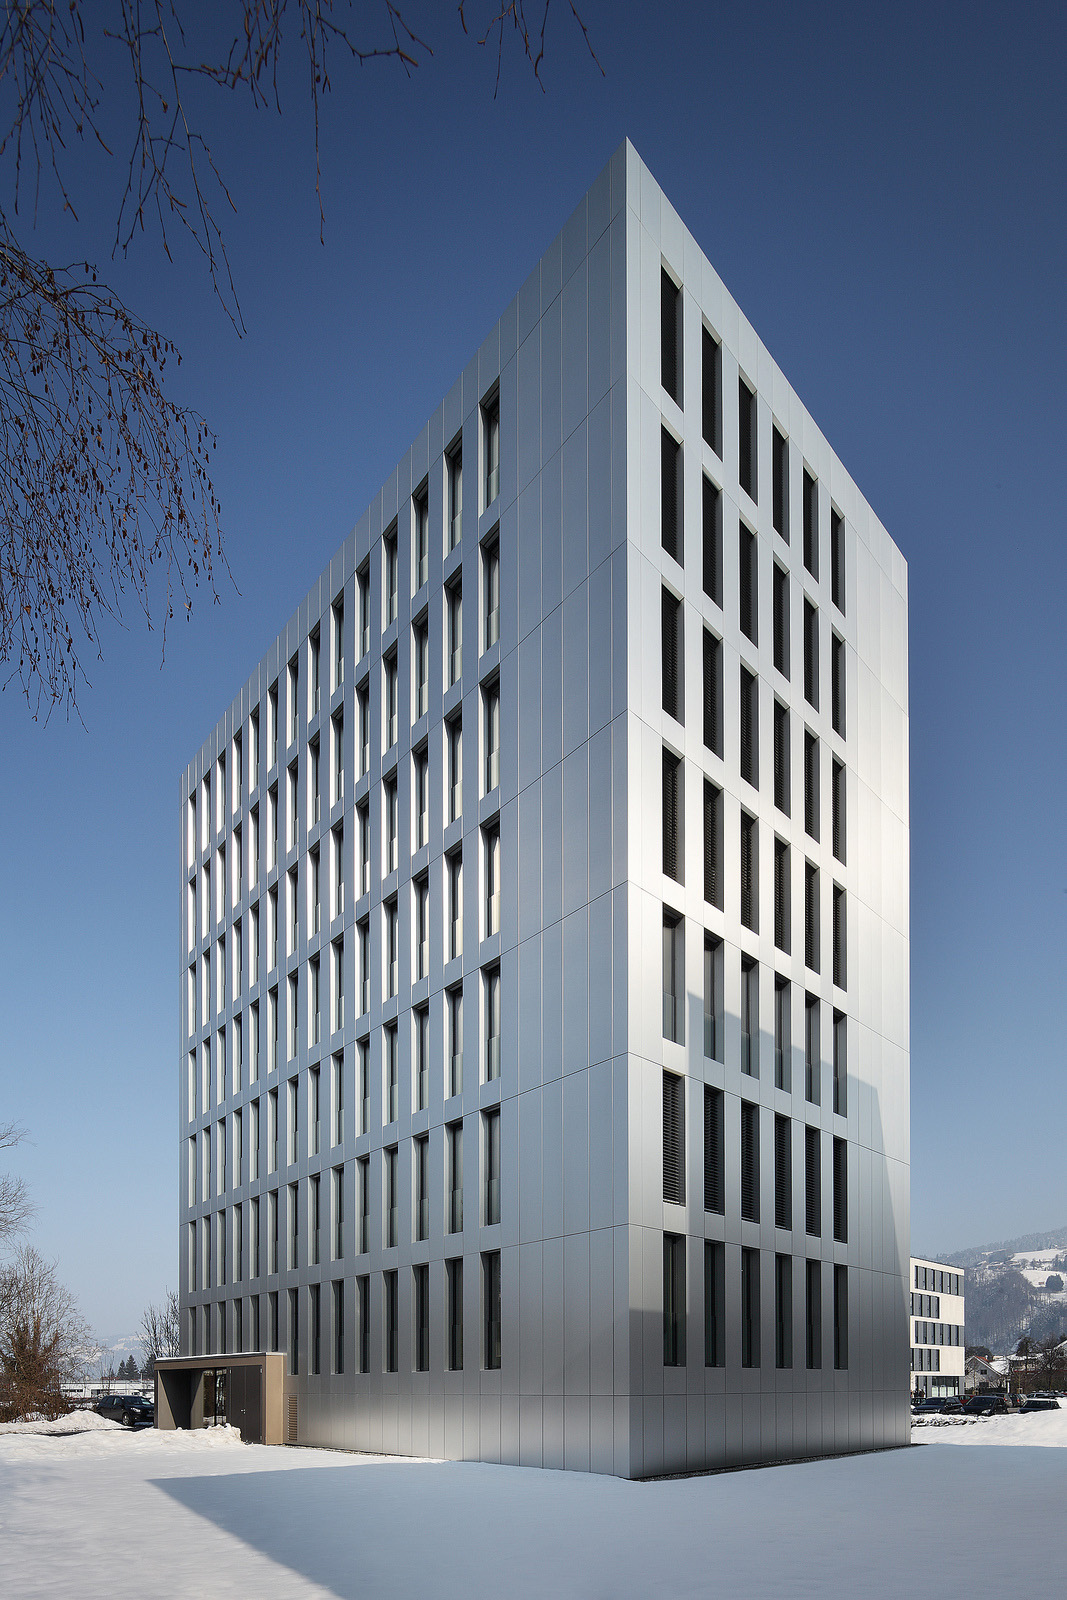 CREE/Rhomberg, LCT ONE, Wood Office Building, Dornbirn 2012. Norman A. Müller.